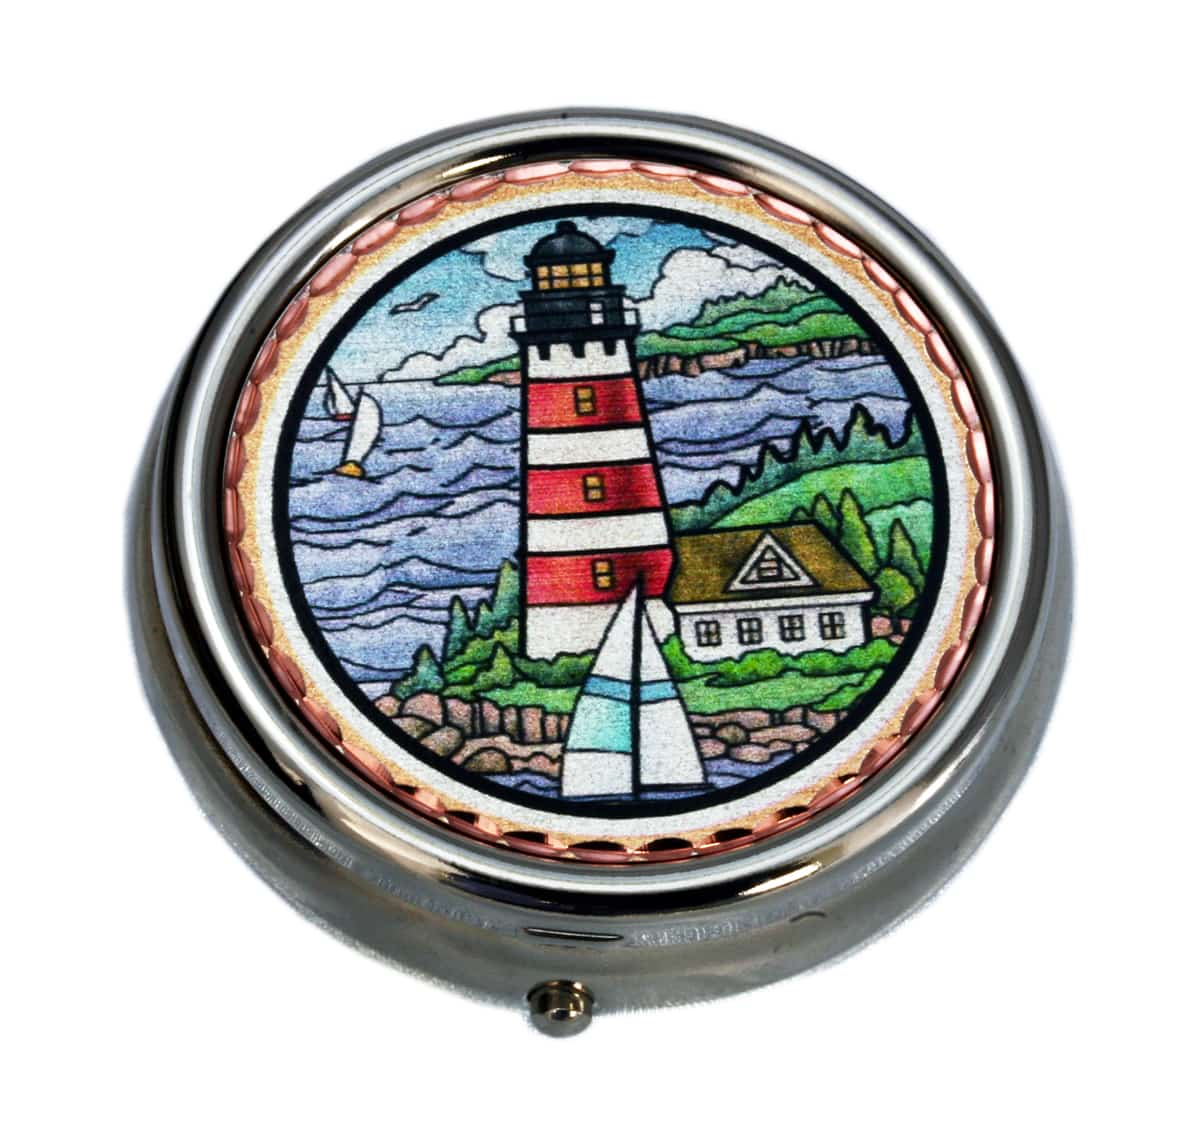 Handcrafted Nautical Gifts, Lighthouse and Sailboat Pill Boxes